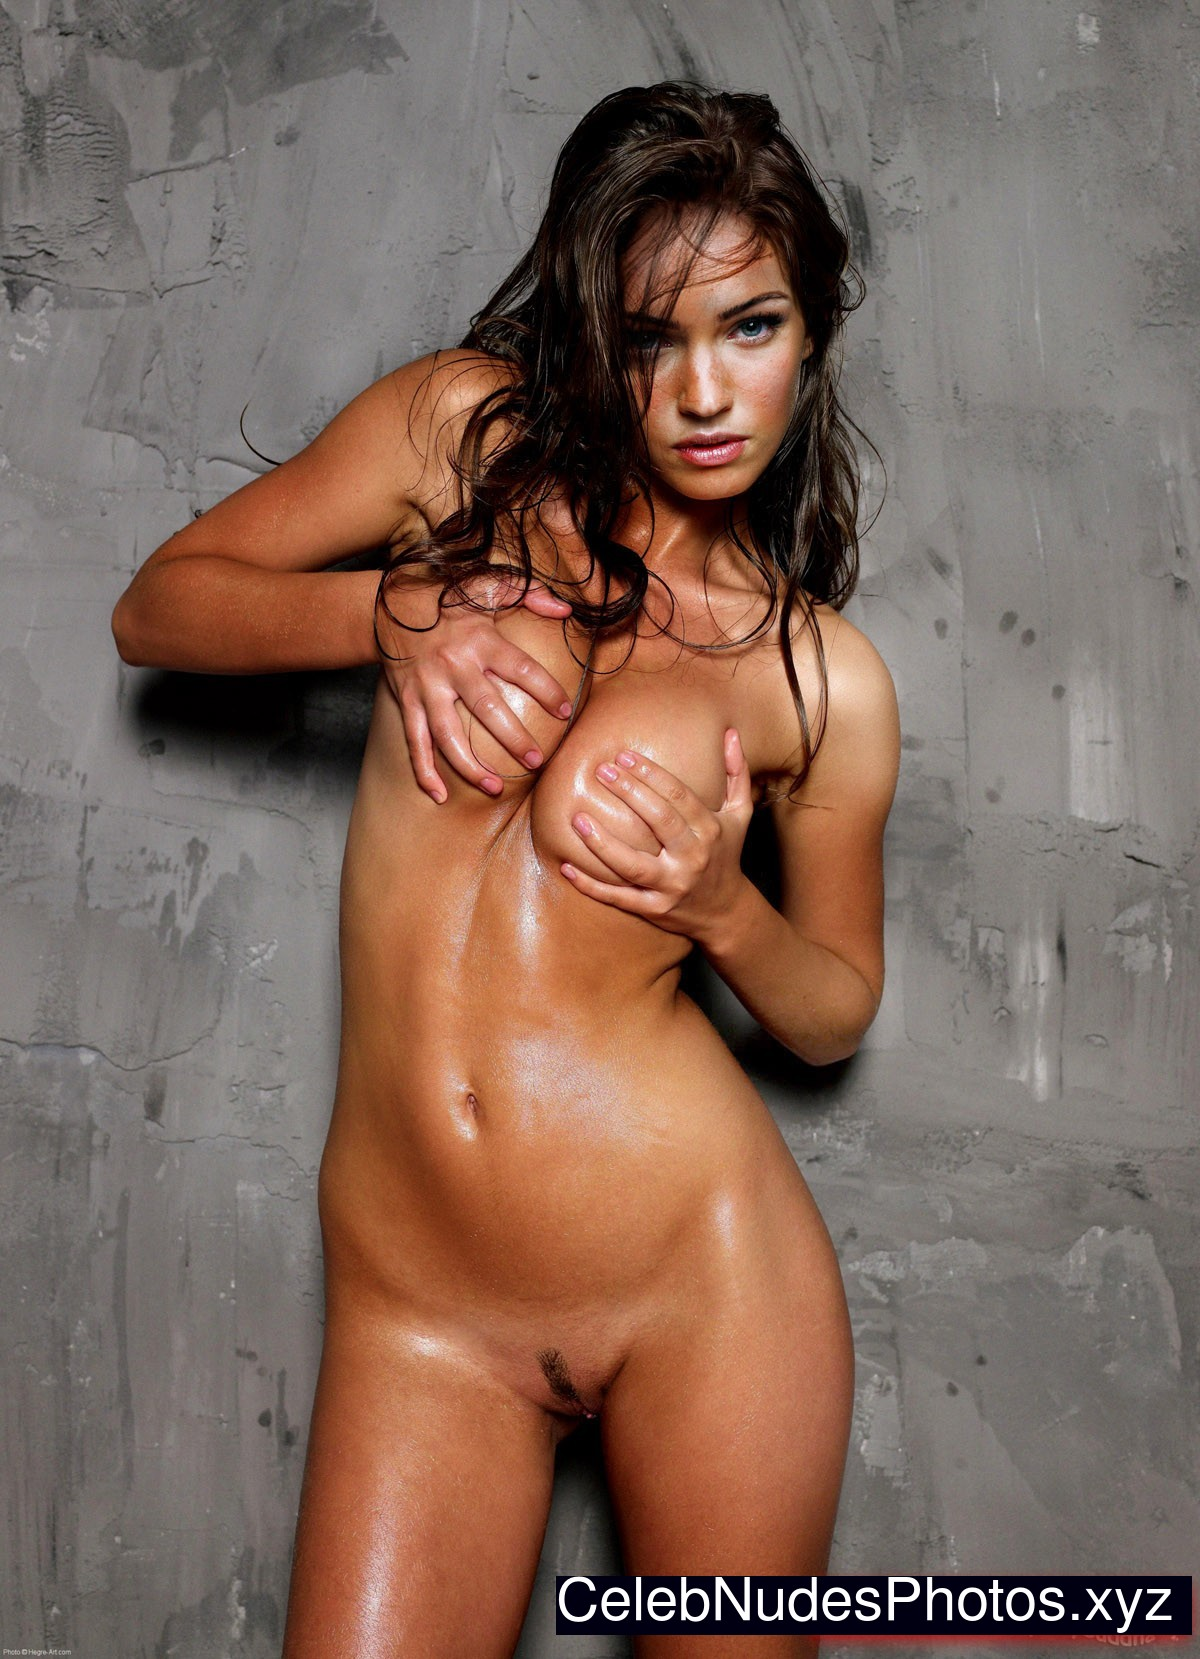 Remarkable, Megan fox naked apologise, can